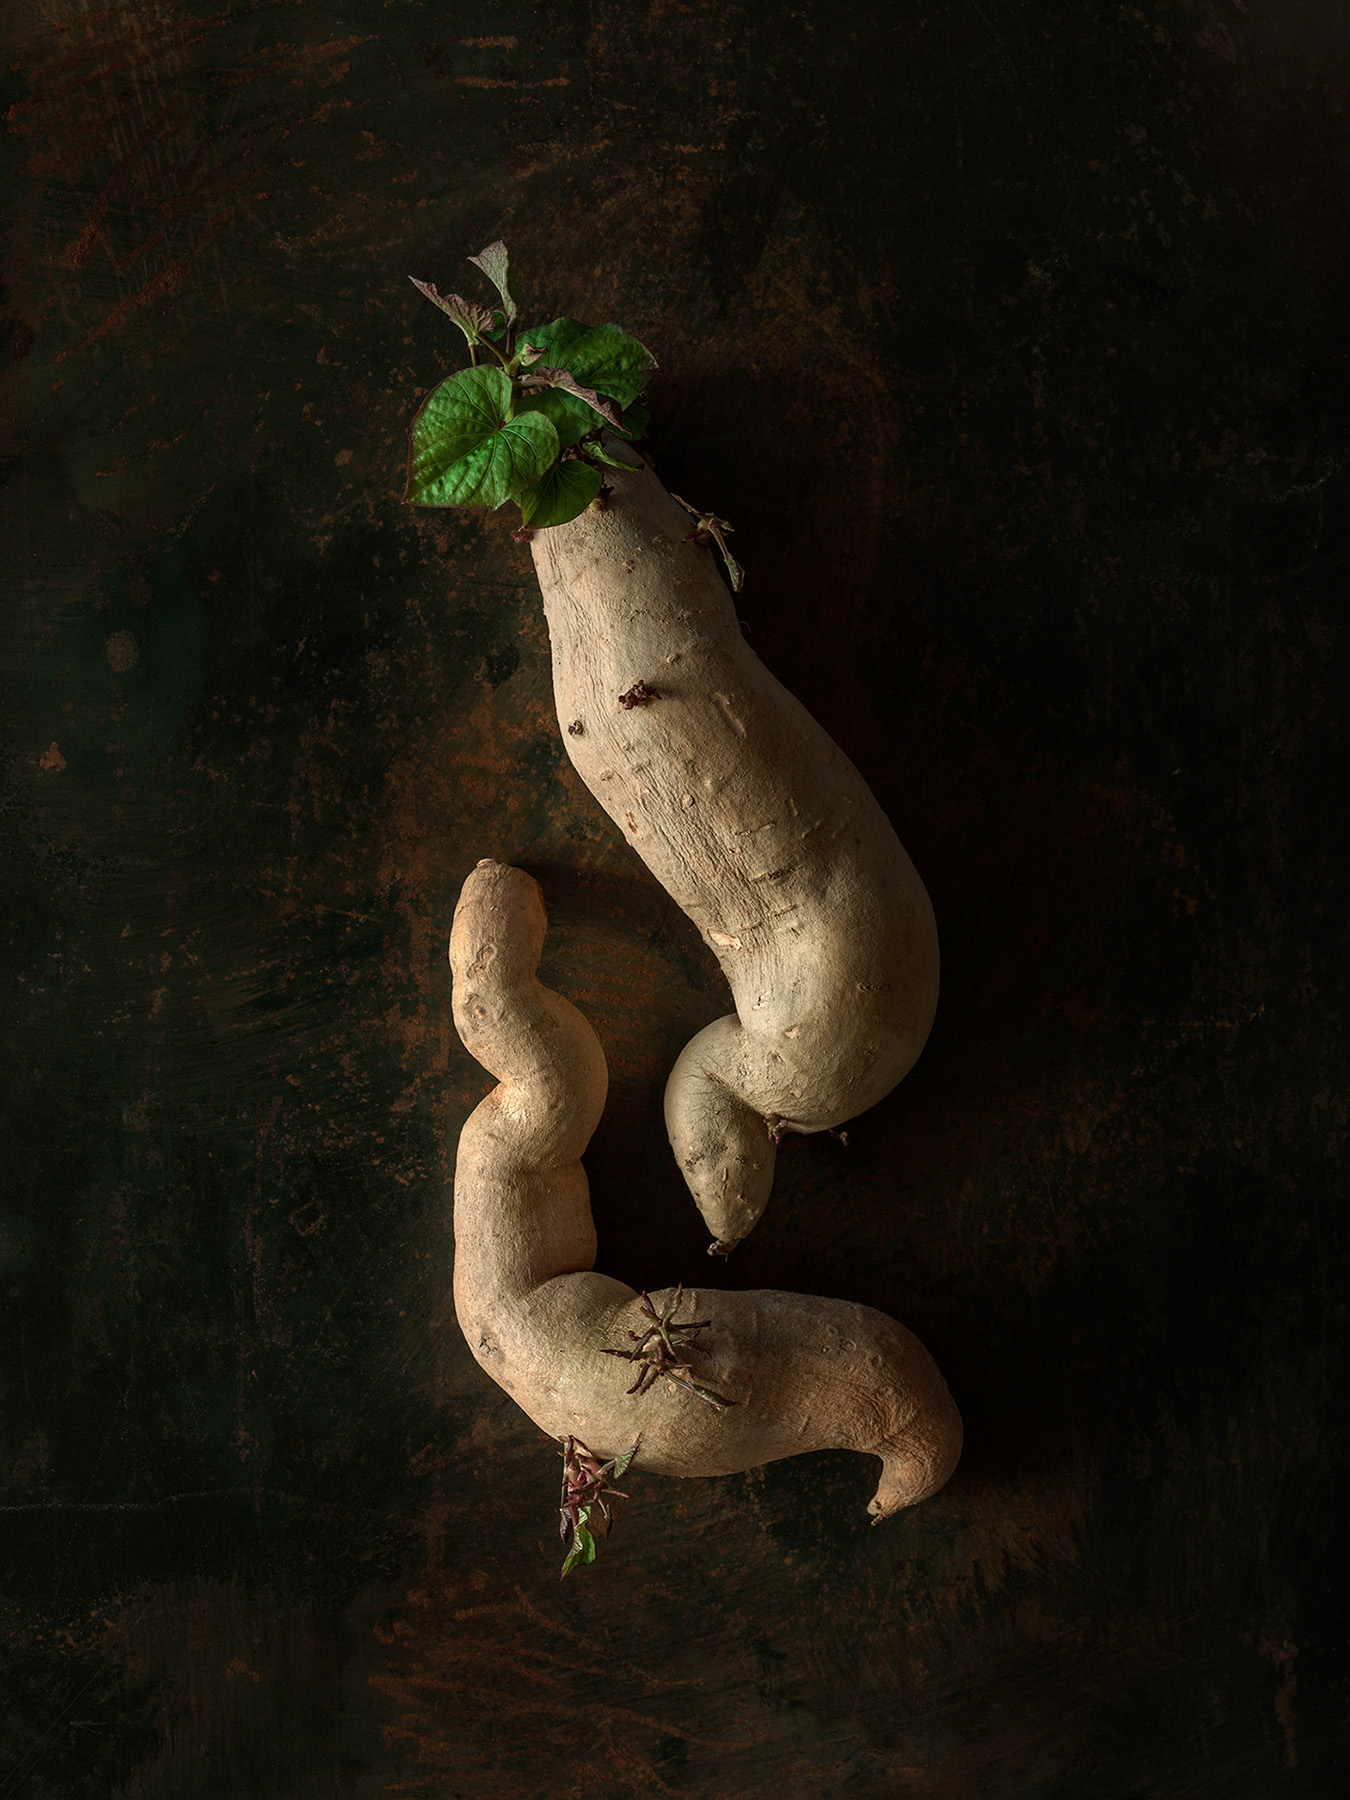 Beth_Galton_Amour_de_Pomme_de_Terre_Fingerlin_Sweet_Potato_6_4days_5.jpg